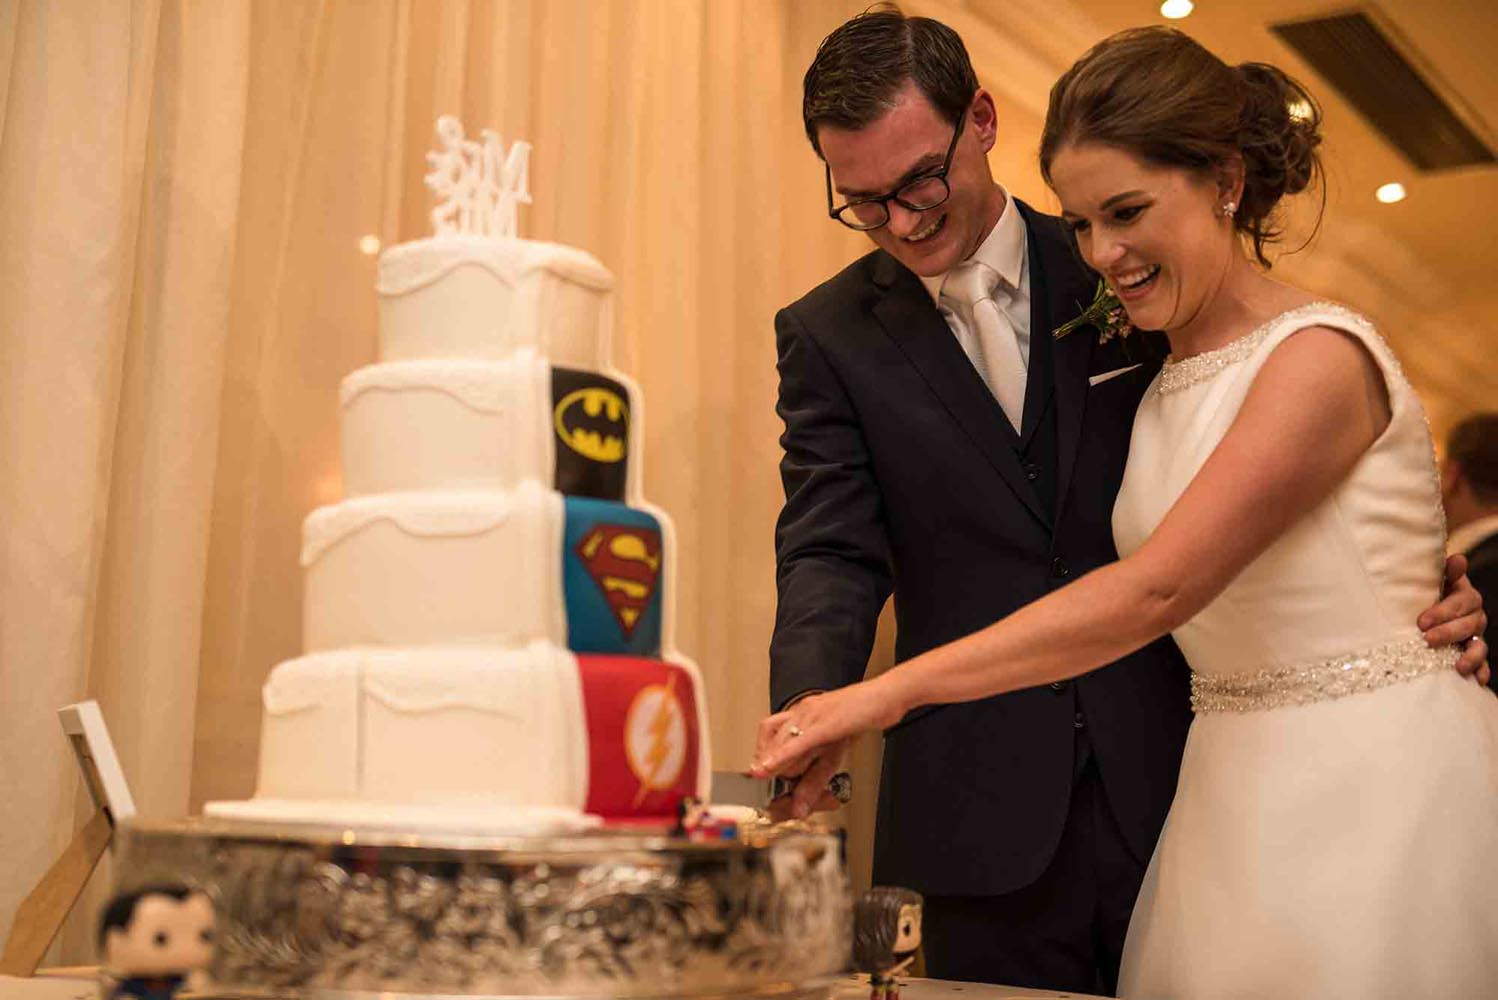 Close up of bride and groom cutting their wedding cake